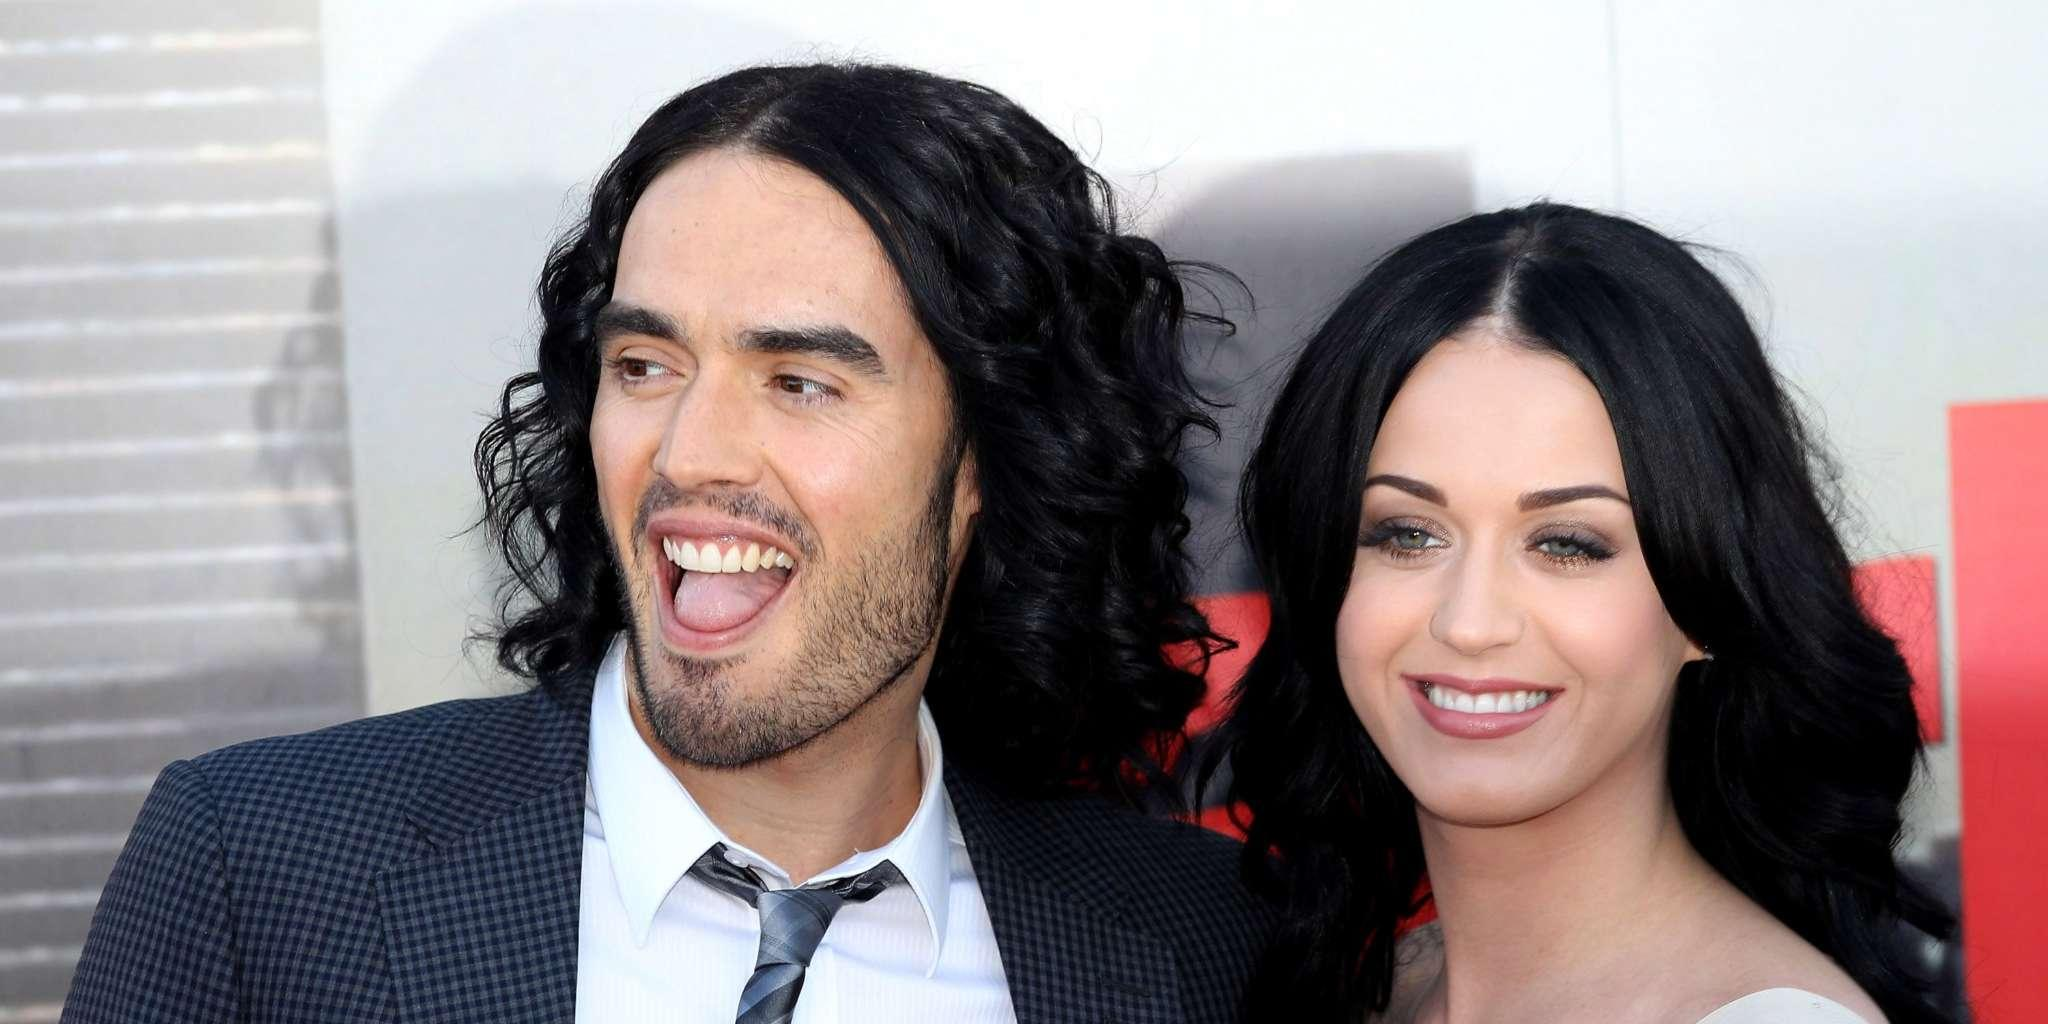 Katy Perry Raves About 'Healthy' Orlando Bloom Relationship And Opens Up About 'Tornado'- Like Marriage With Ex Russell Brand